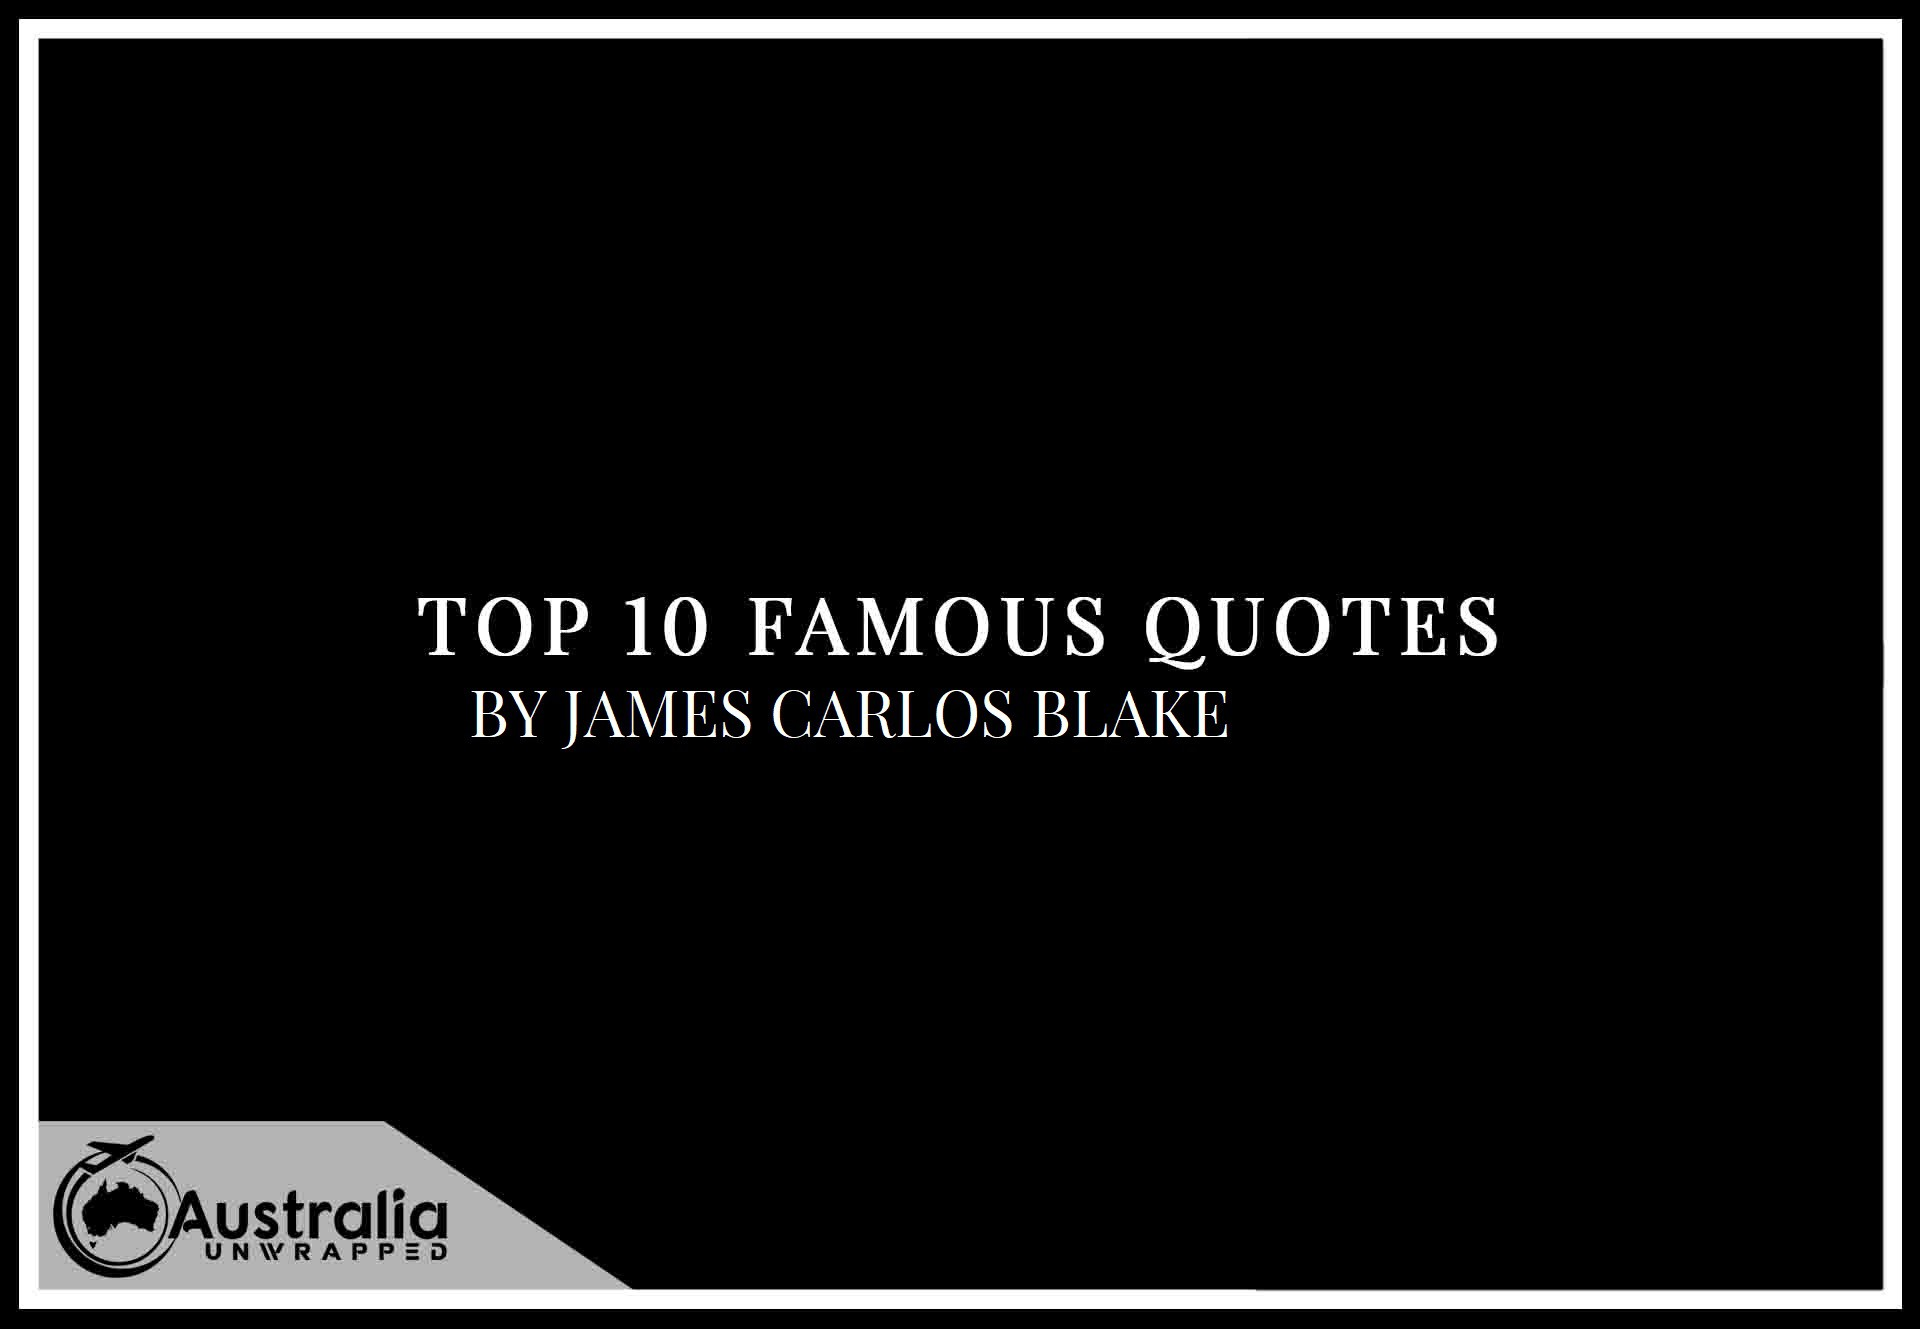 Top 10 Famous Quotes by Author James Carlos Blake